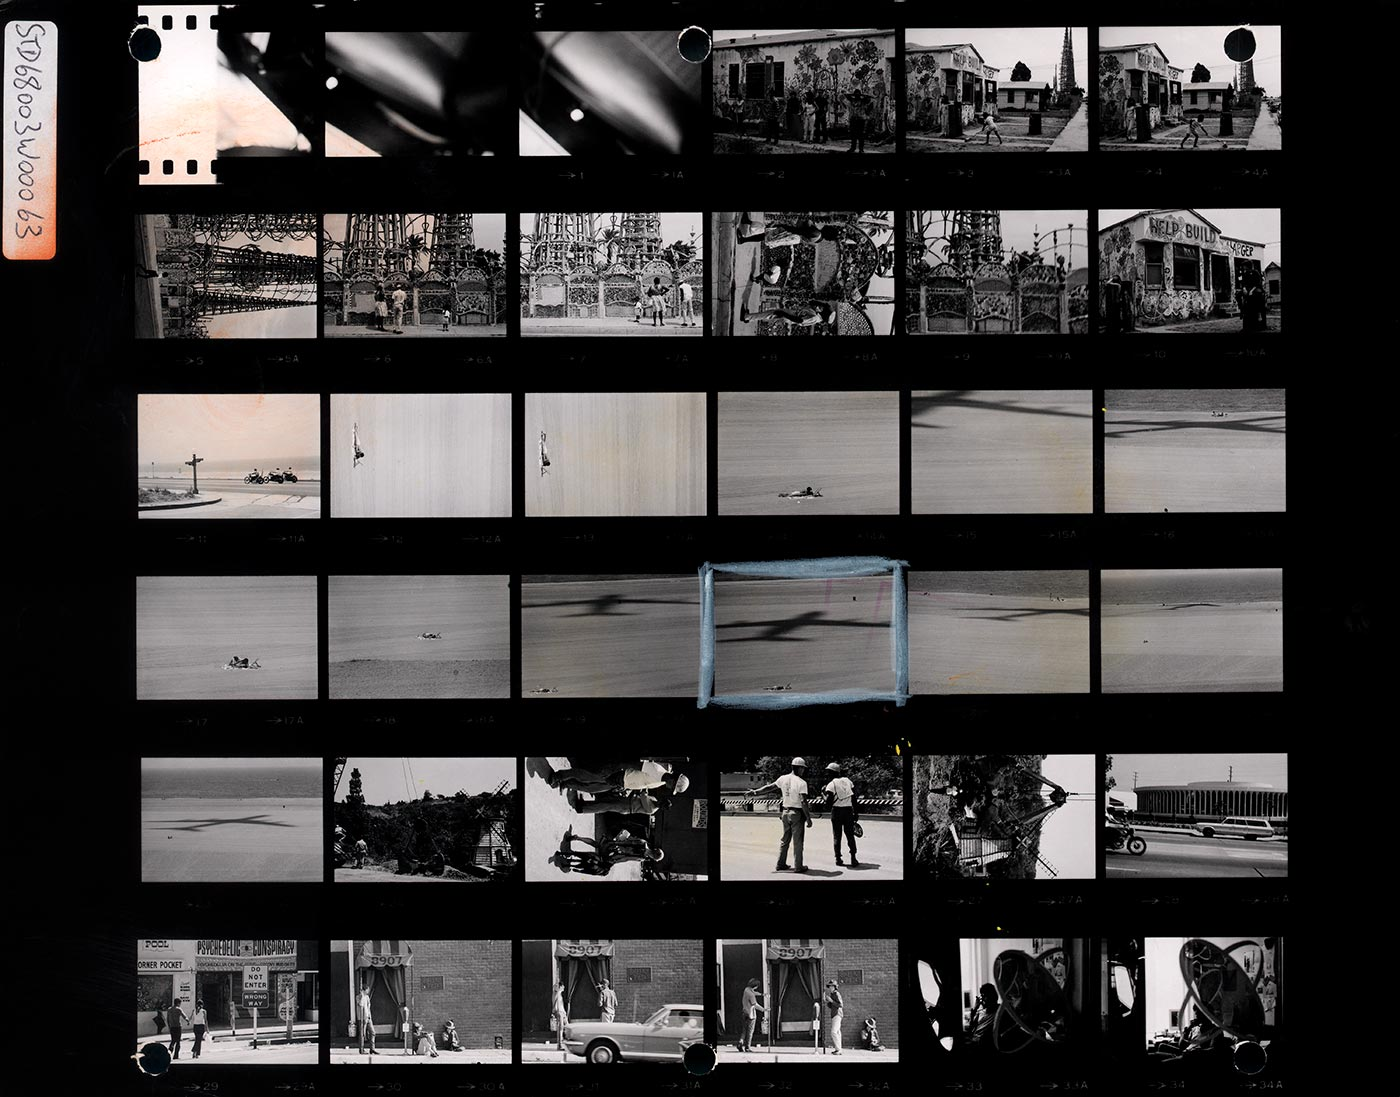 Contact Sheet Print: The California Trip